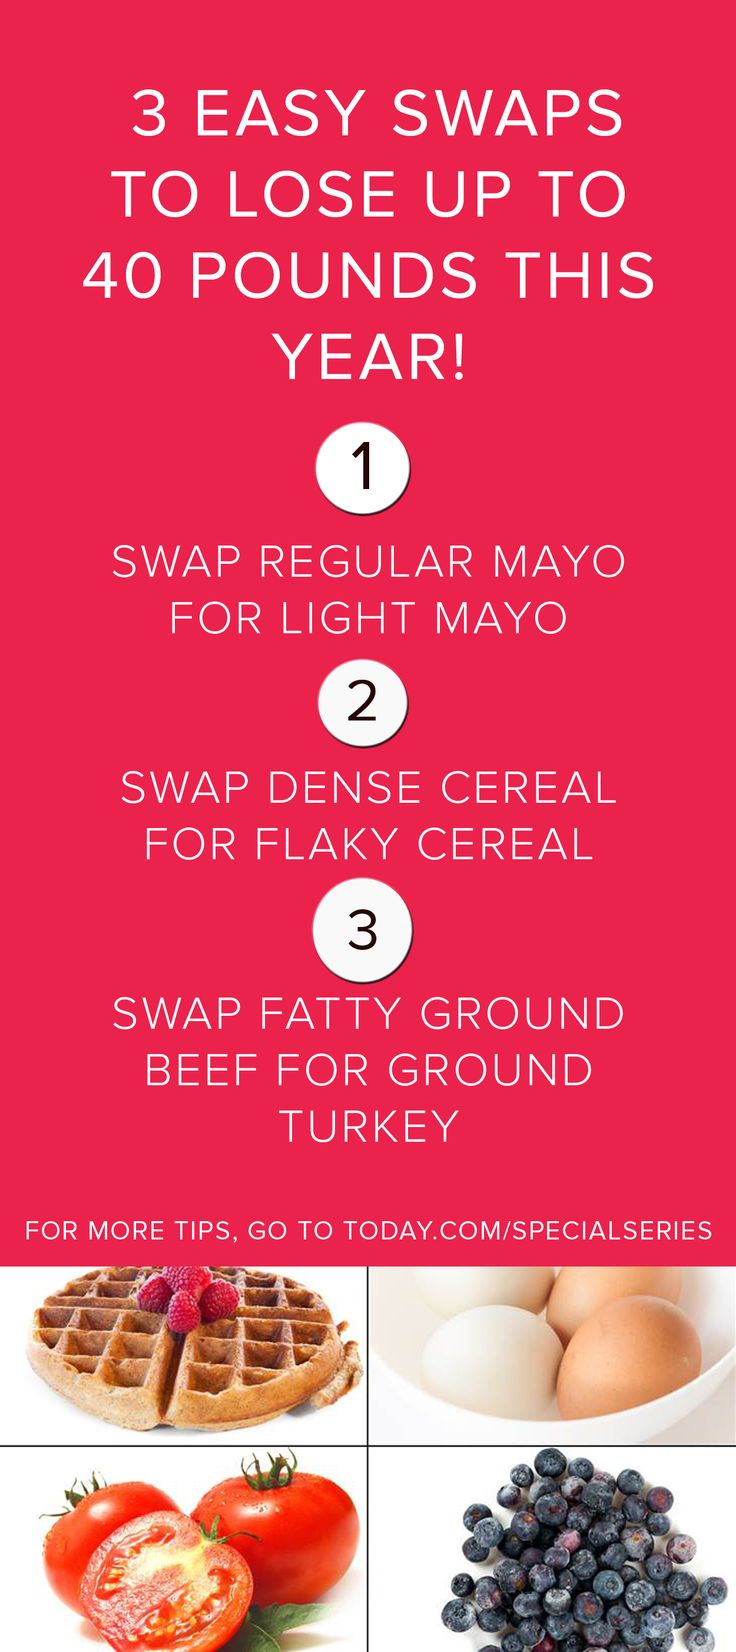 Use Joy Bauer's grocery list and meal plan to lose 10 pounds this month